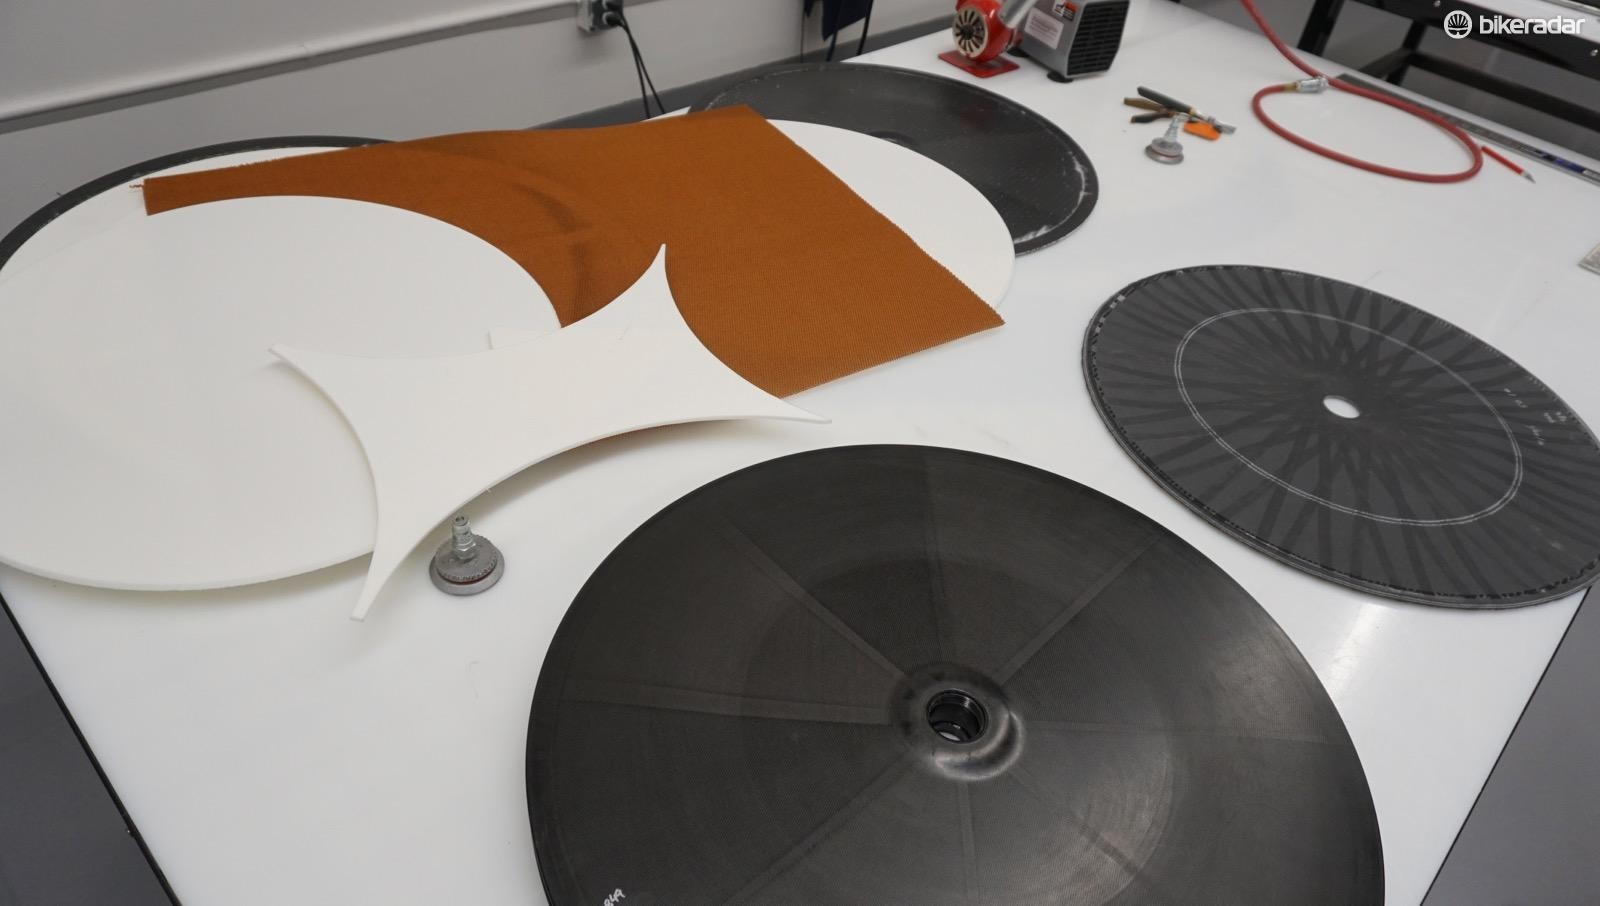 A foam core goes into the 1,005g 321 Disc